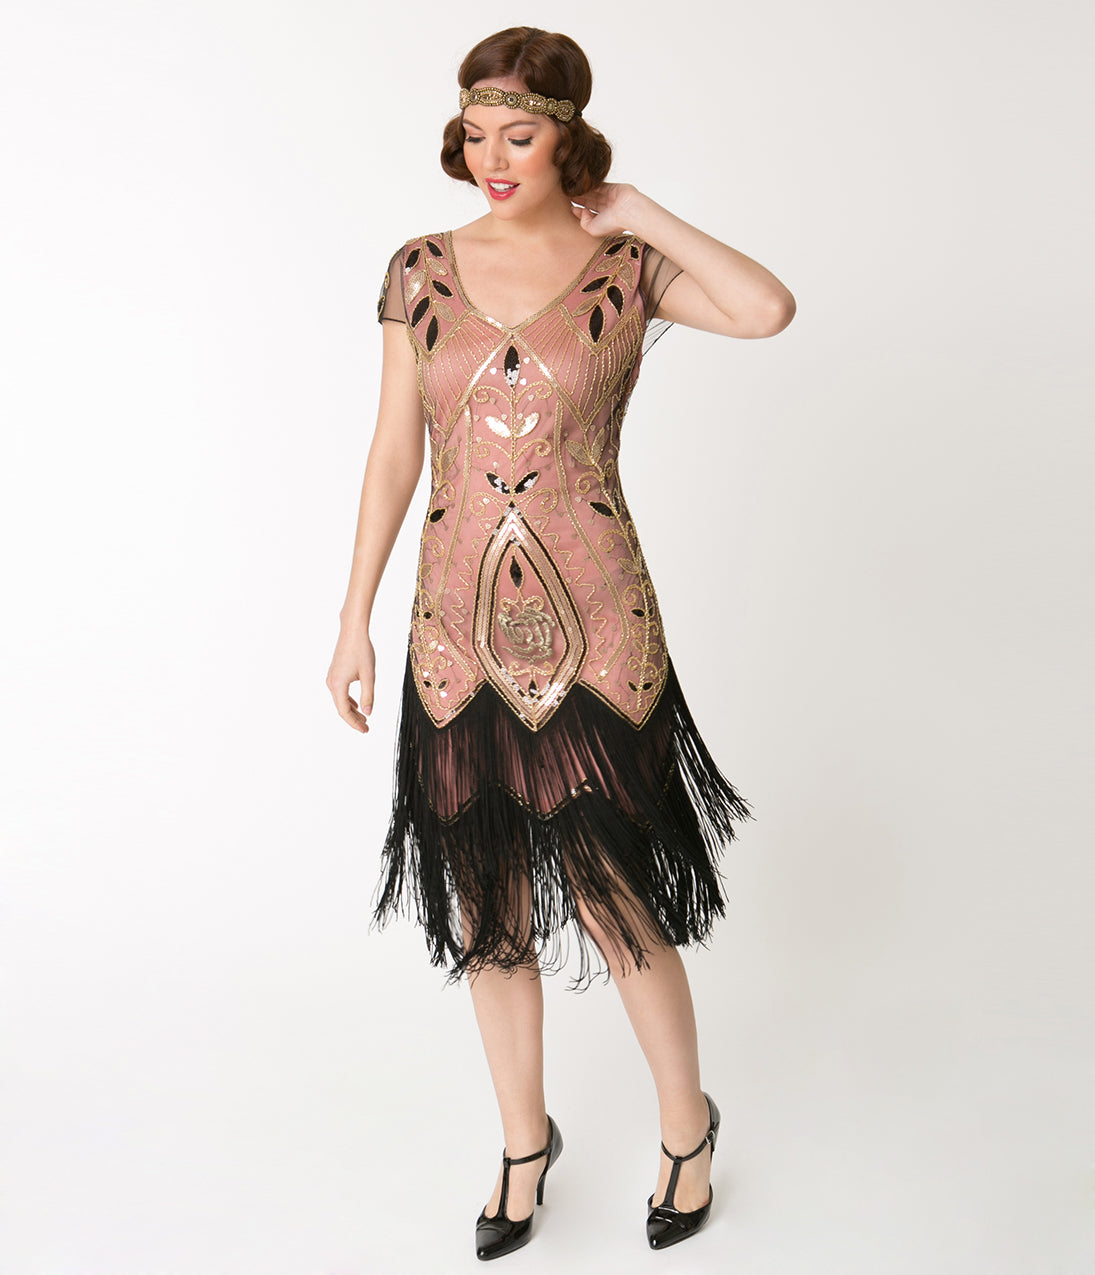 Vintage Evening Dresses and Formal Evening Gowns Unique Vintage 1920S Gold Rose  Pink Noele Fringe Flapper Dress $68.00 AT vintagedancer.com